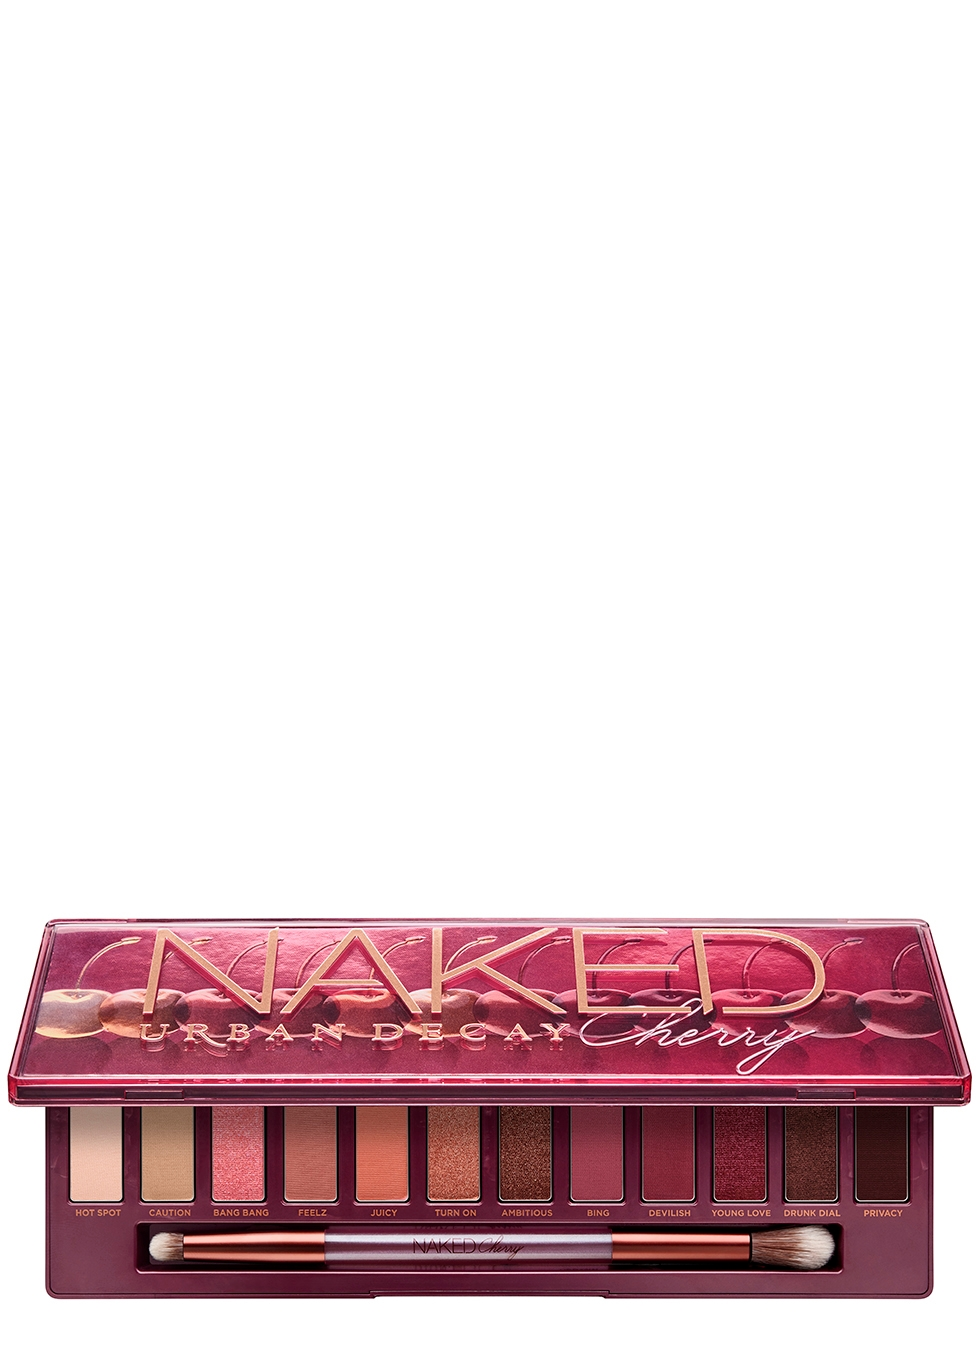 Naked Cherry Eyeshadow Palette - Urban Decay